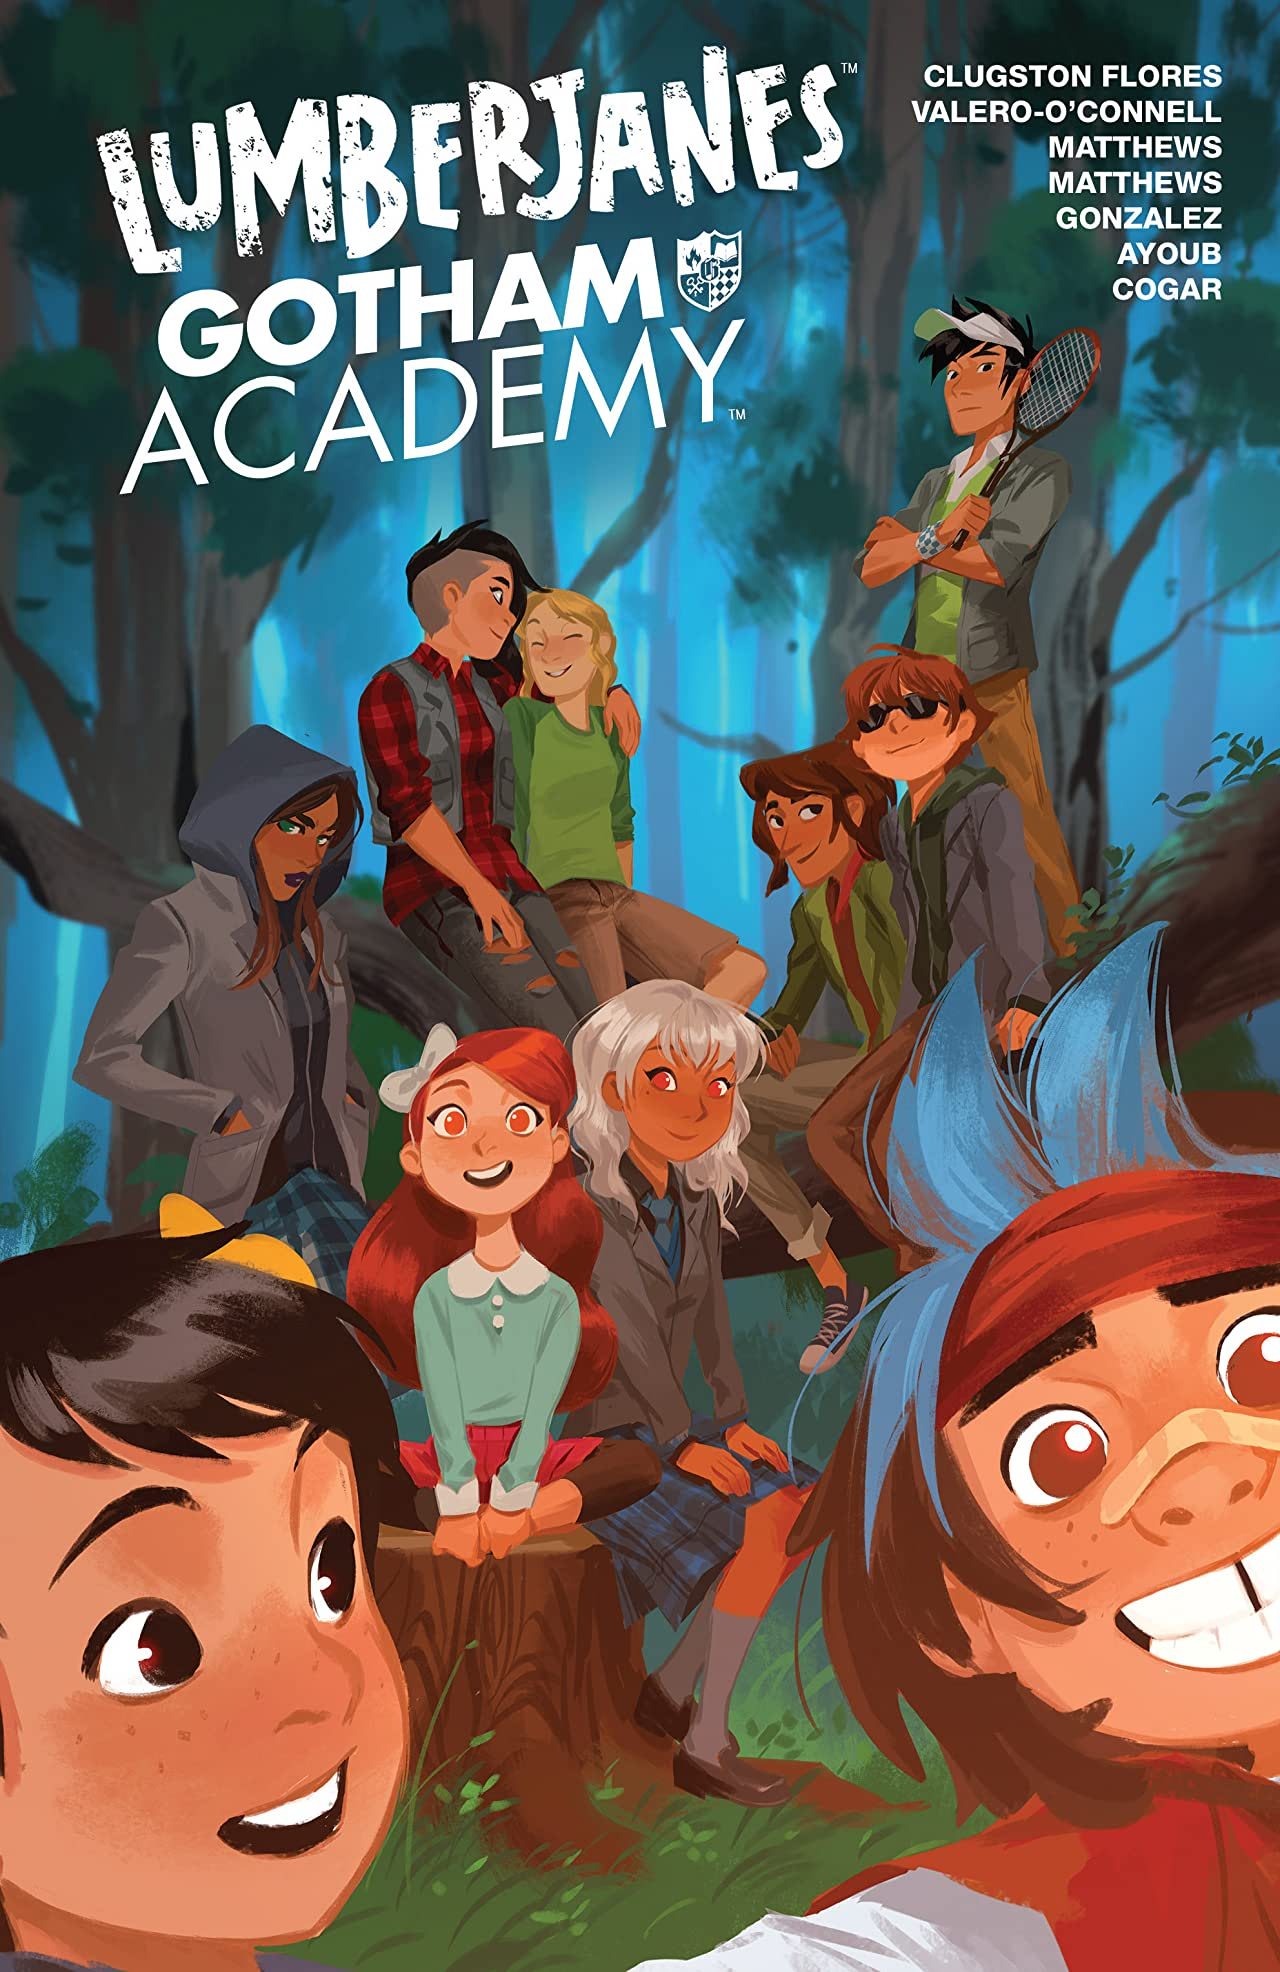 Episode 252 | Goodreads Book of the Month: Lumberjanes/Gotham Academy Vol 1.